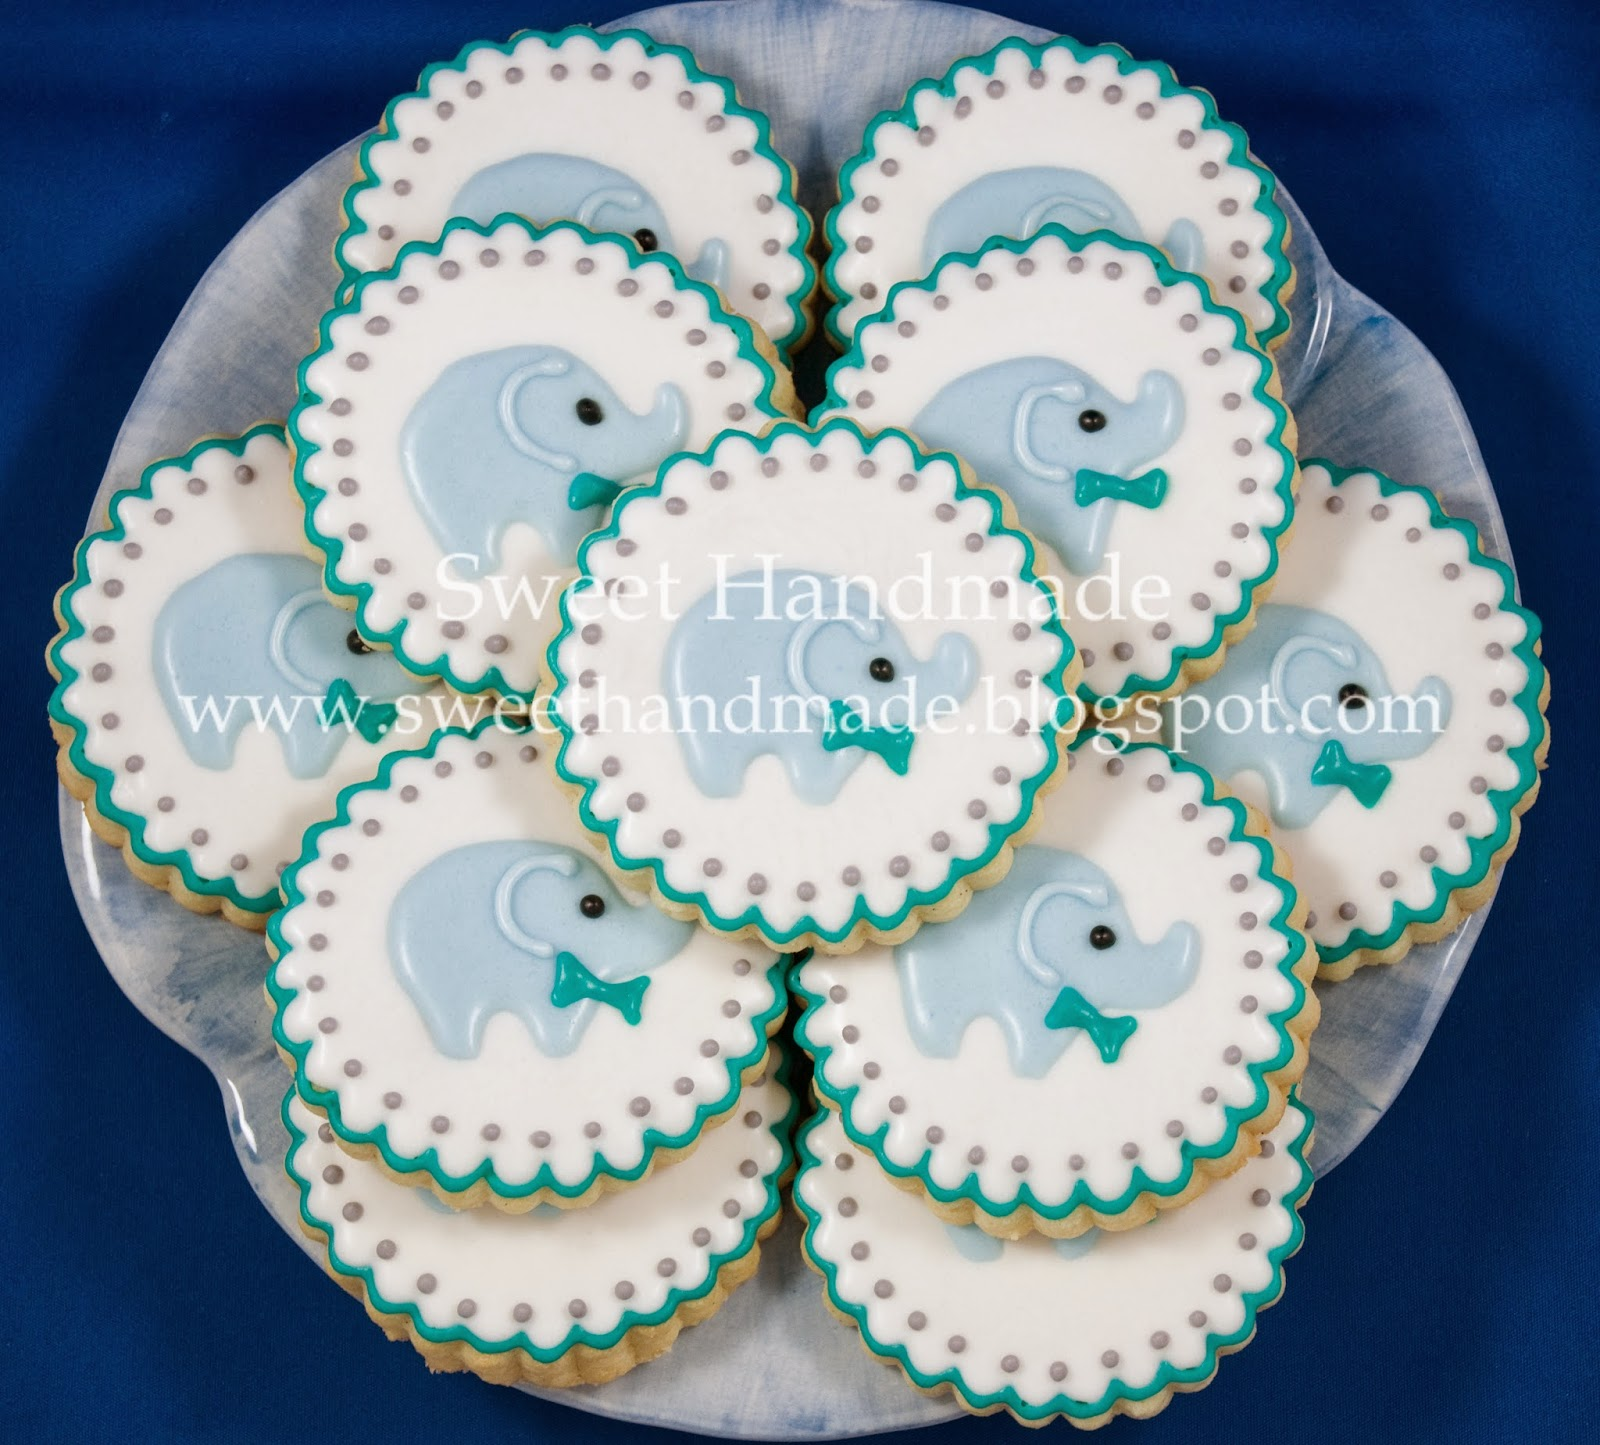 sweet handmade cookies tbt baby shower cookies with an elephant